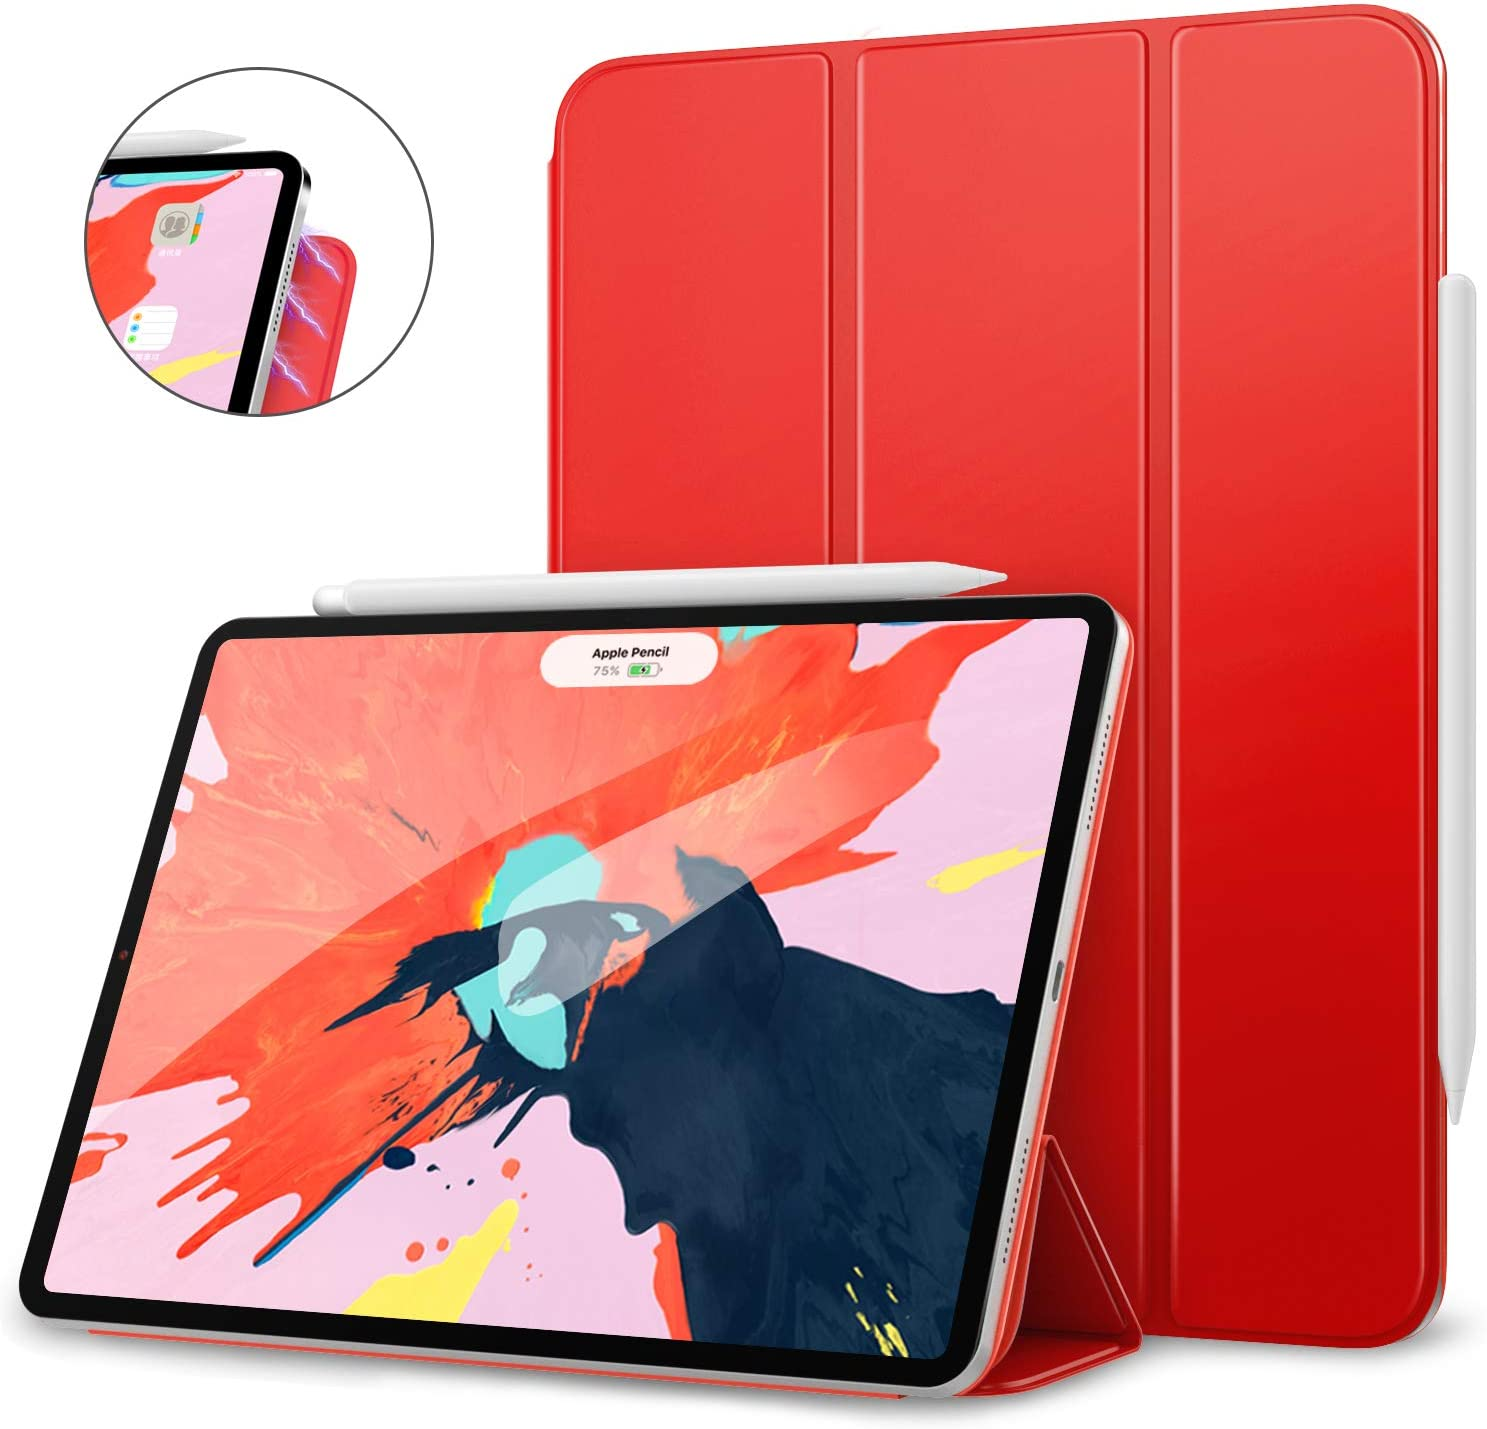 """MoKo Smart Folio Case Fit iPad Pro 12.9"""" 2018 - [Support Magnetically Attach Charge/Pair] Slim Lightweight Smart Shell Stand Cover, Strong Magnetic Adsorption, Auto Wake/Sleep - Red"""